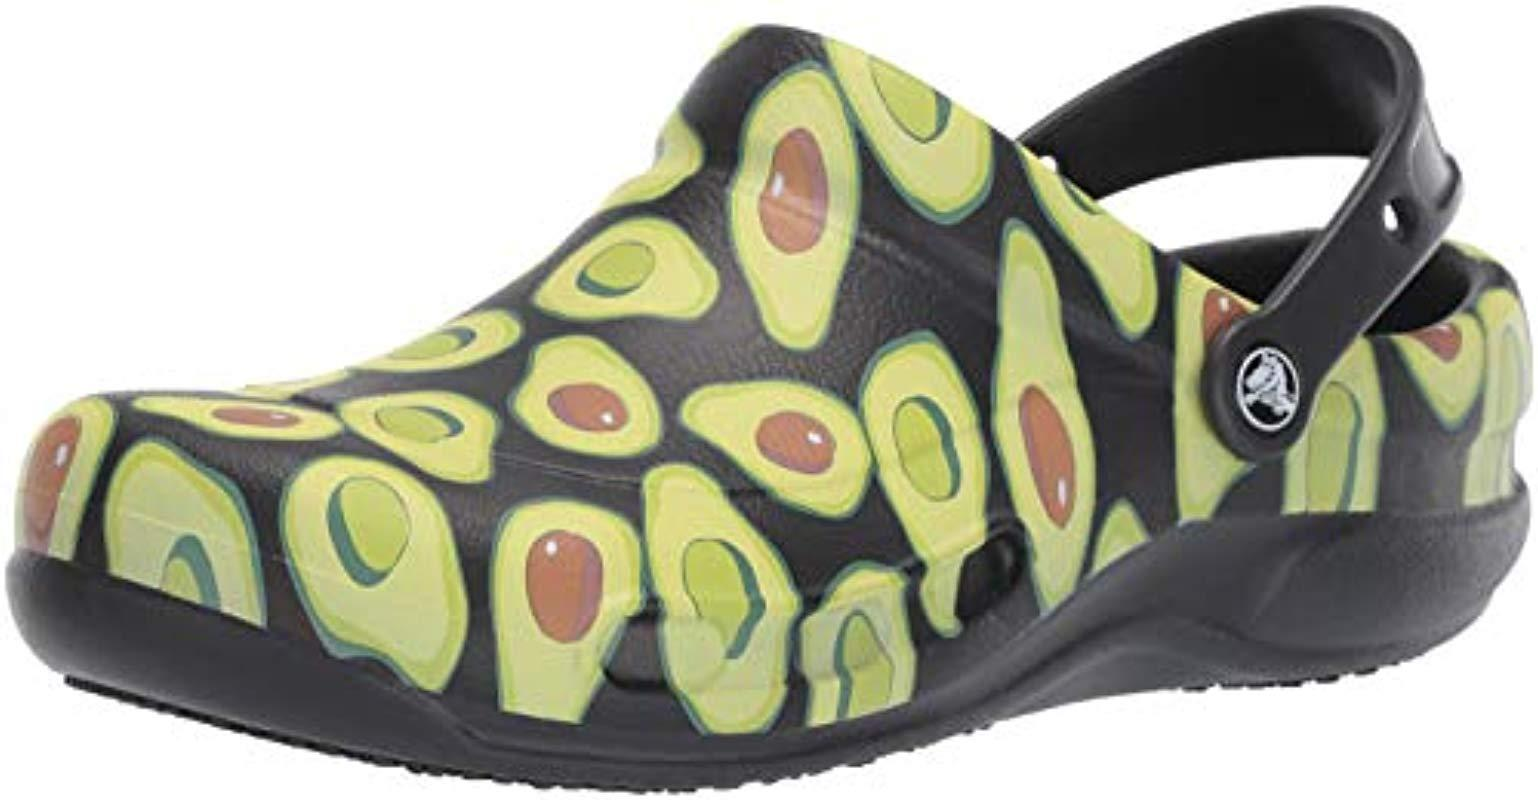 fded31fdca07 Lyst - Crocs™ And Bistro Graphic Clog